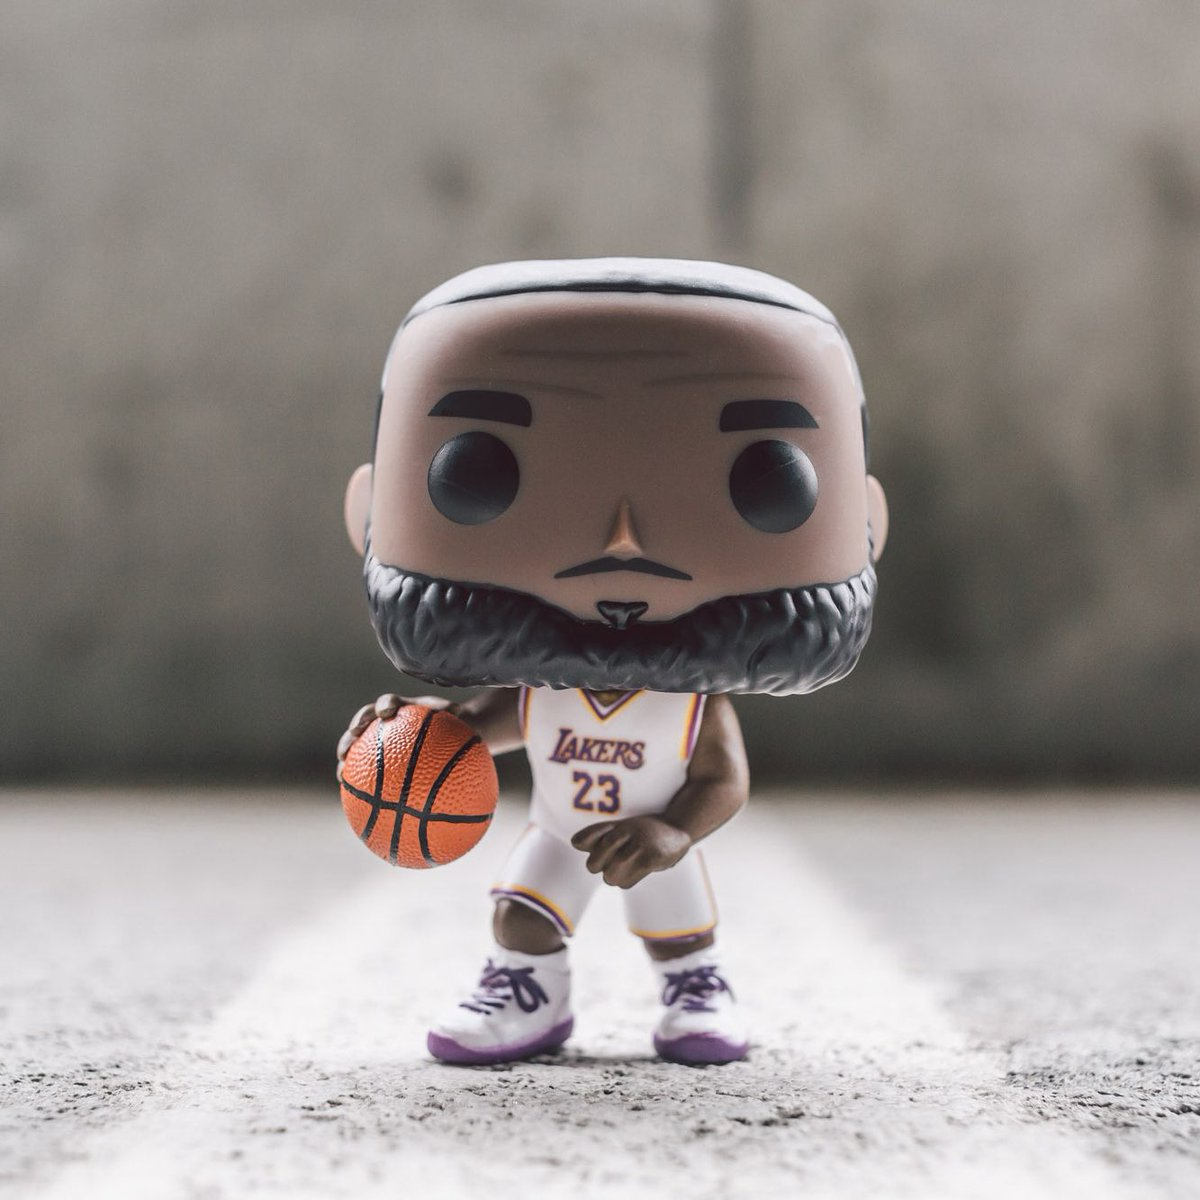 034023776 The Funko POP Basketball NBA LA Lakers LeBron James White Uniform is now  available online at https   bit.ly 2YfVsb9 .pic.twitter.com ZfF49tKFAn